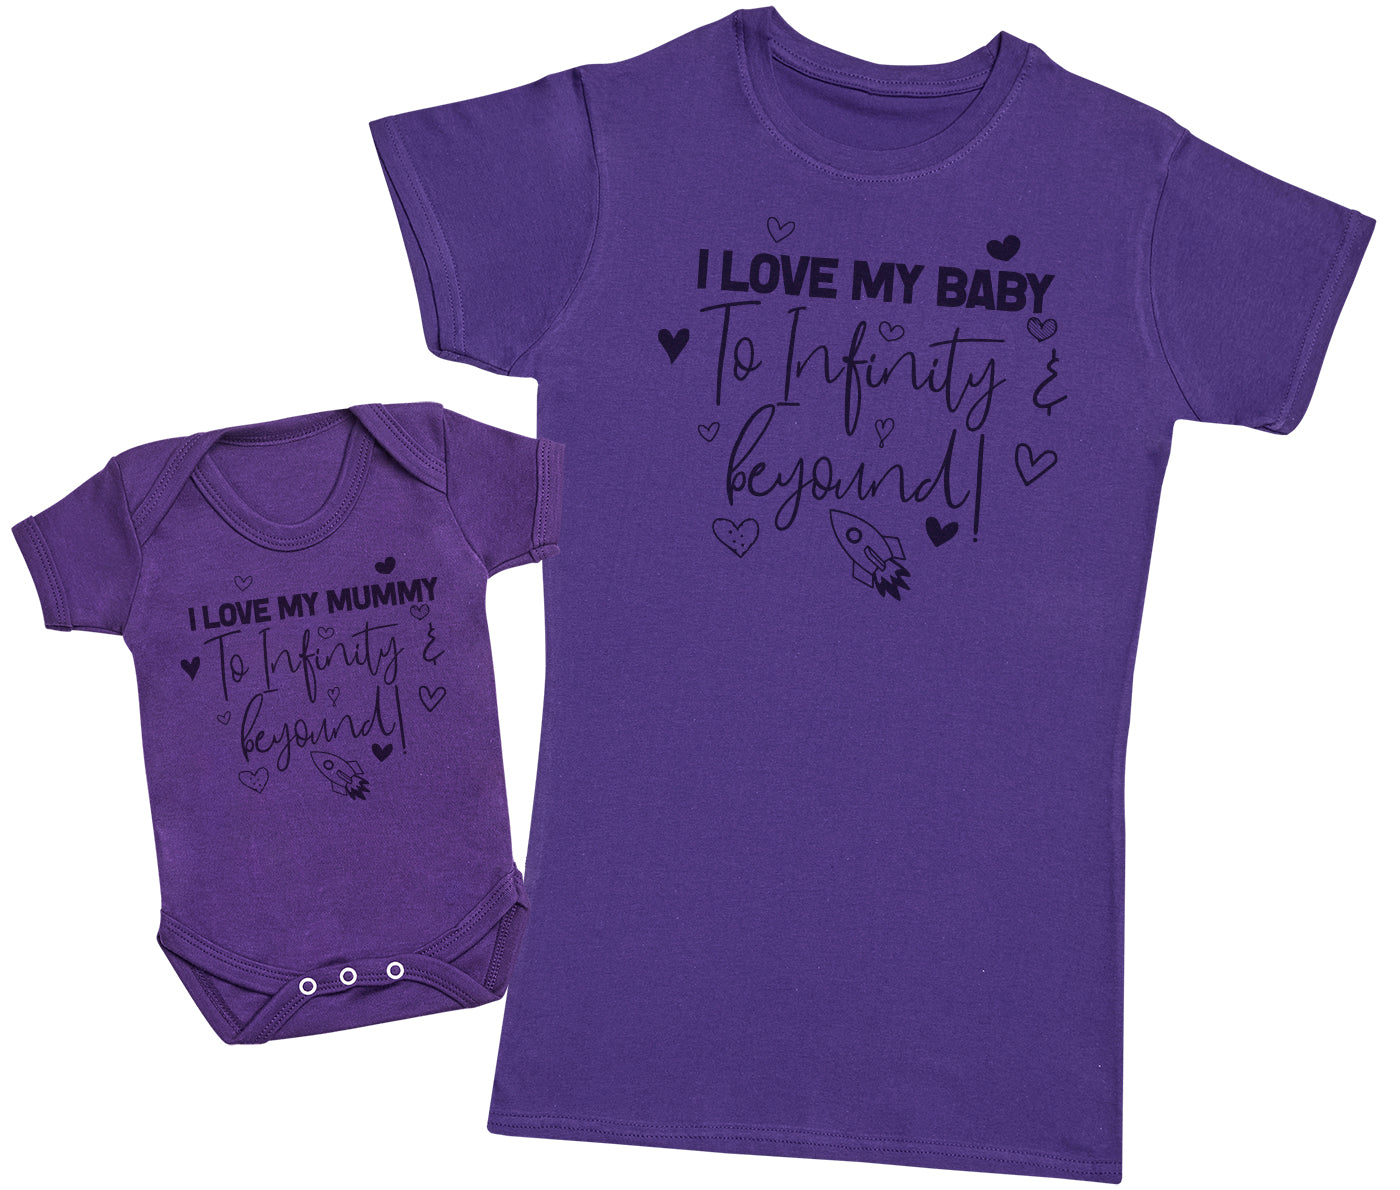 I Love My Mummy & Baby To Infinity & Beyond - Baby Bodysuit & Mother's T-Shirt